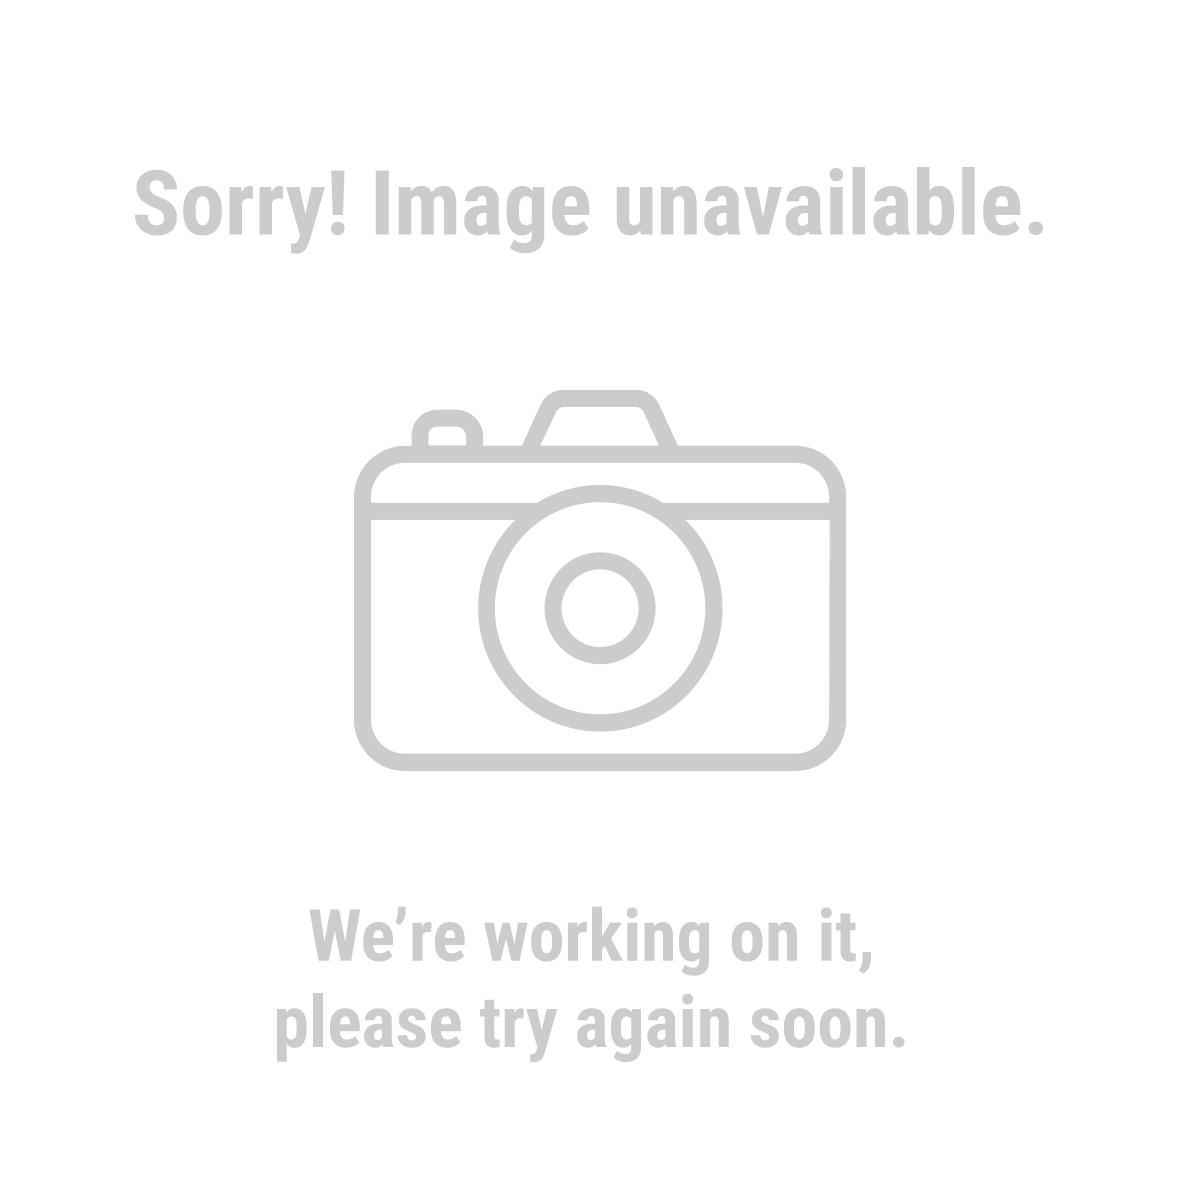 Pittsburgh 62173 25 Pc SAE & Metric Hex Key Set